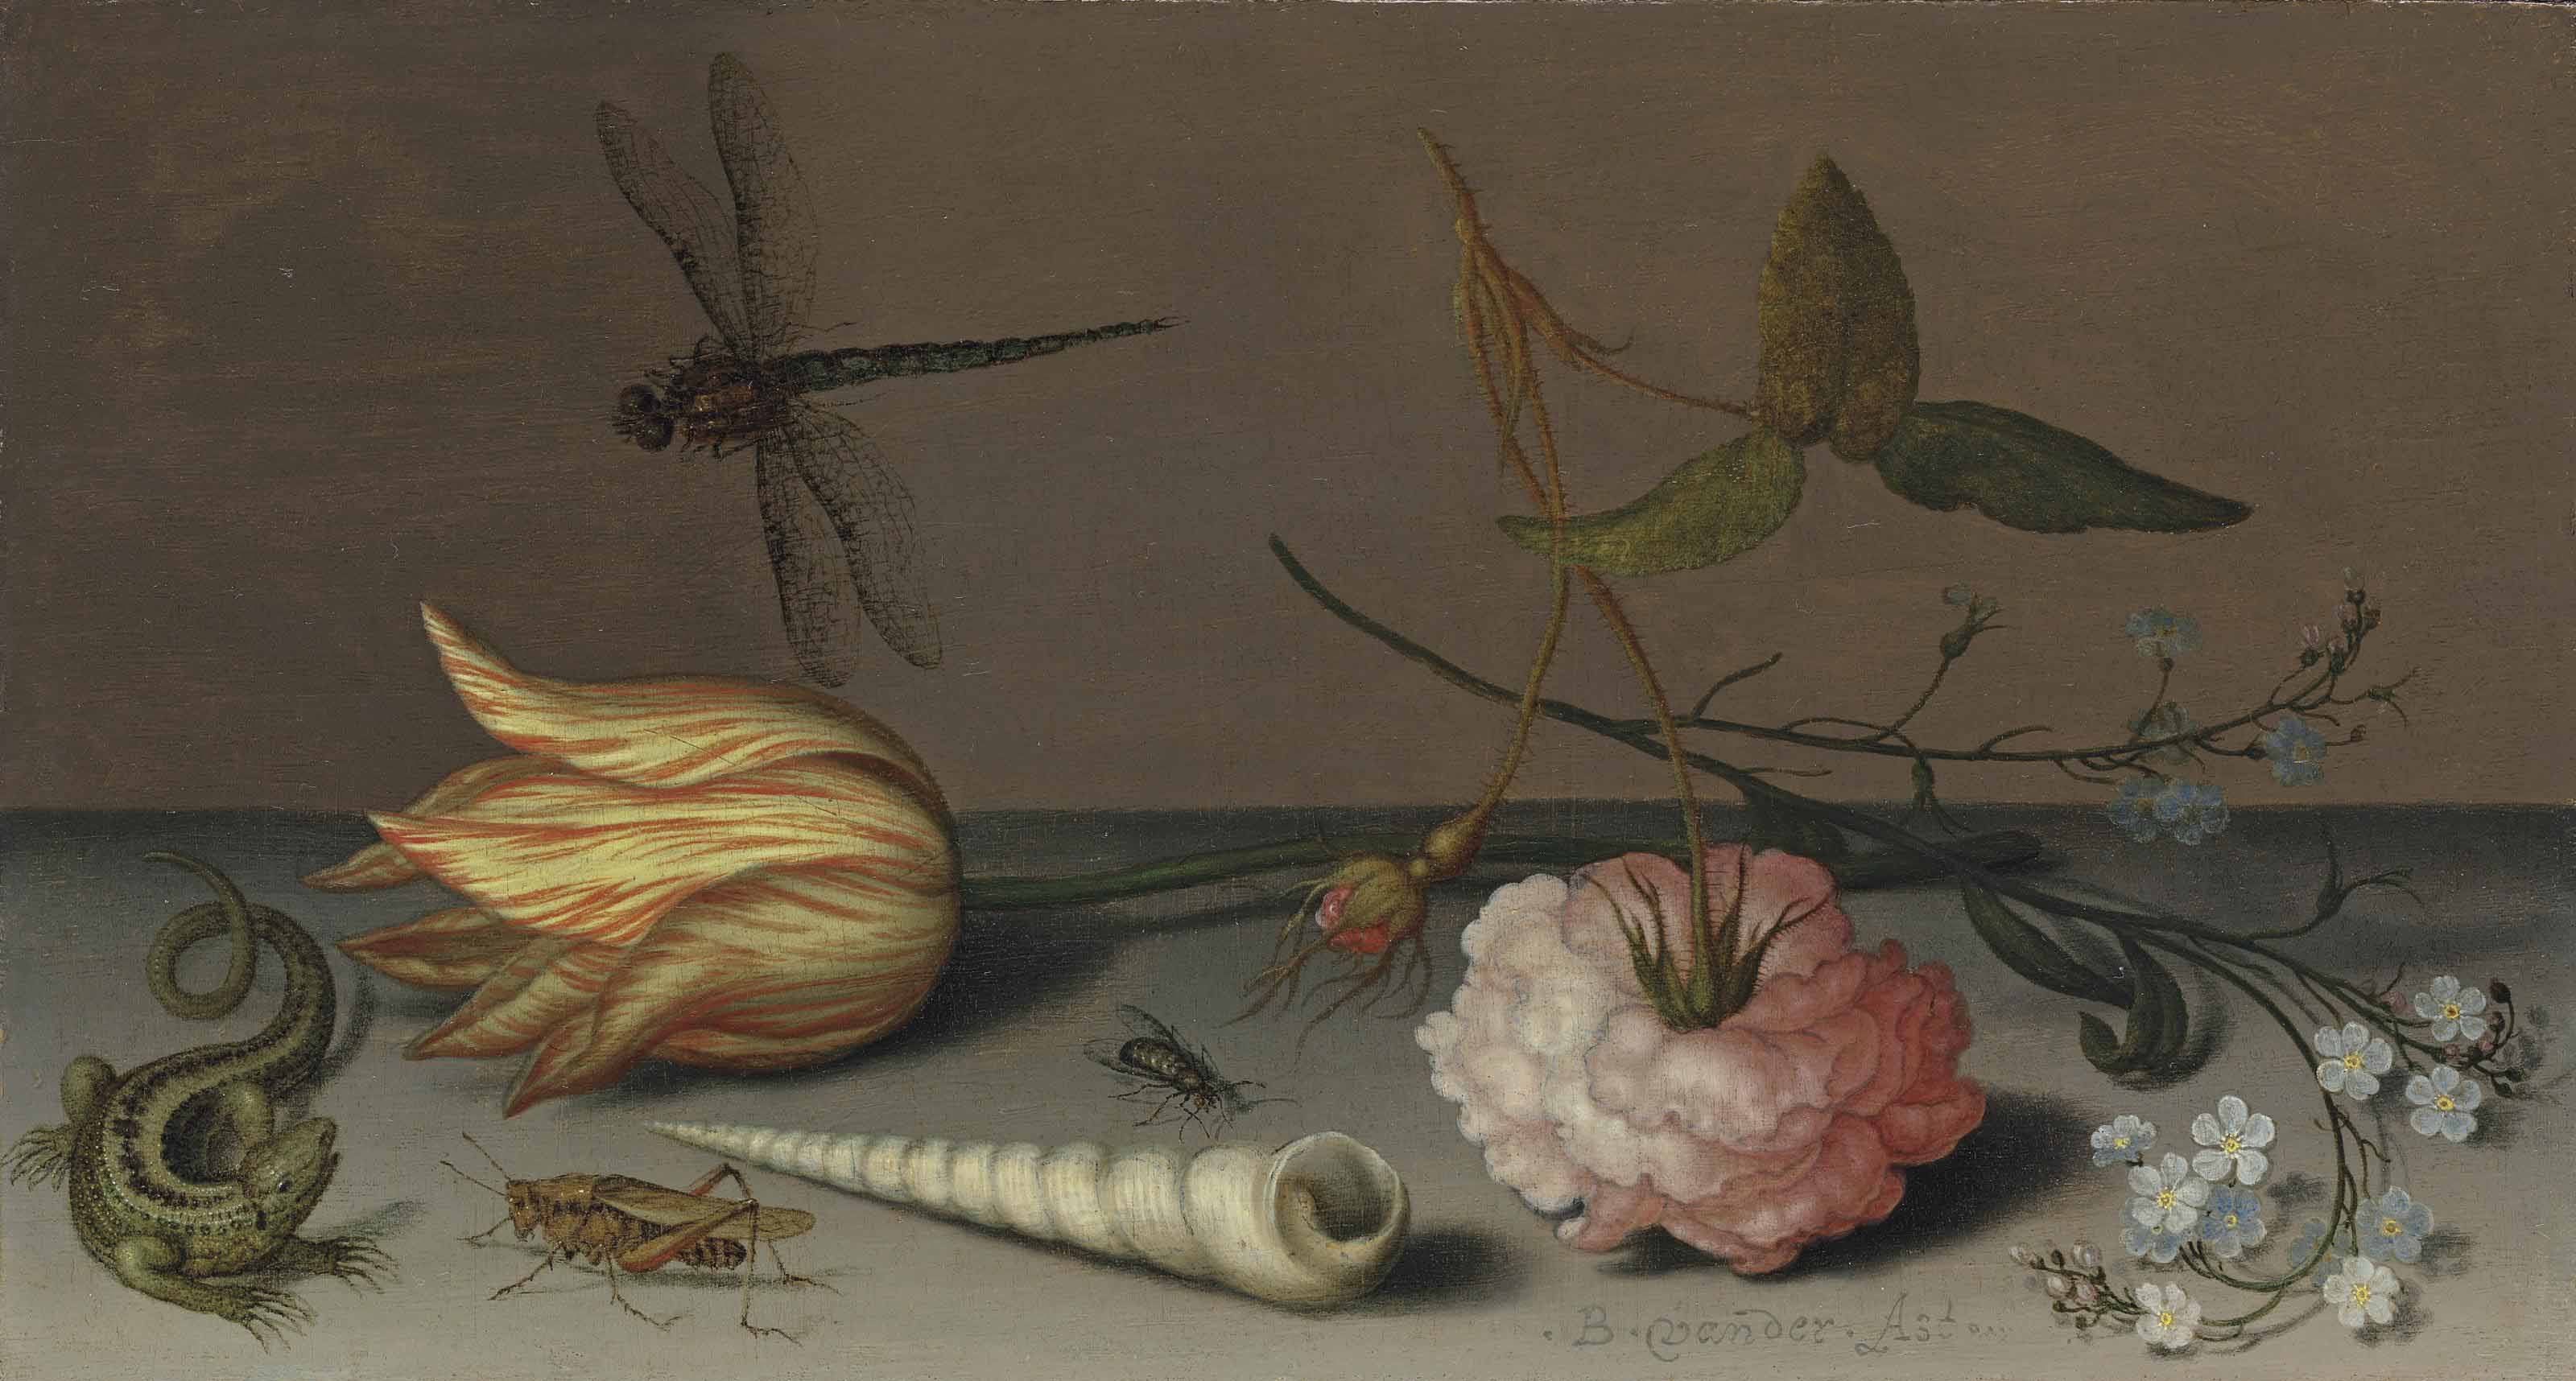 A tulip, a carnation, spray of forget-me-nots, with a shell, a lizard and a grasshopper, on a ledge, a dragonfly in flight